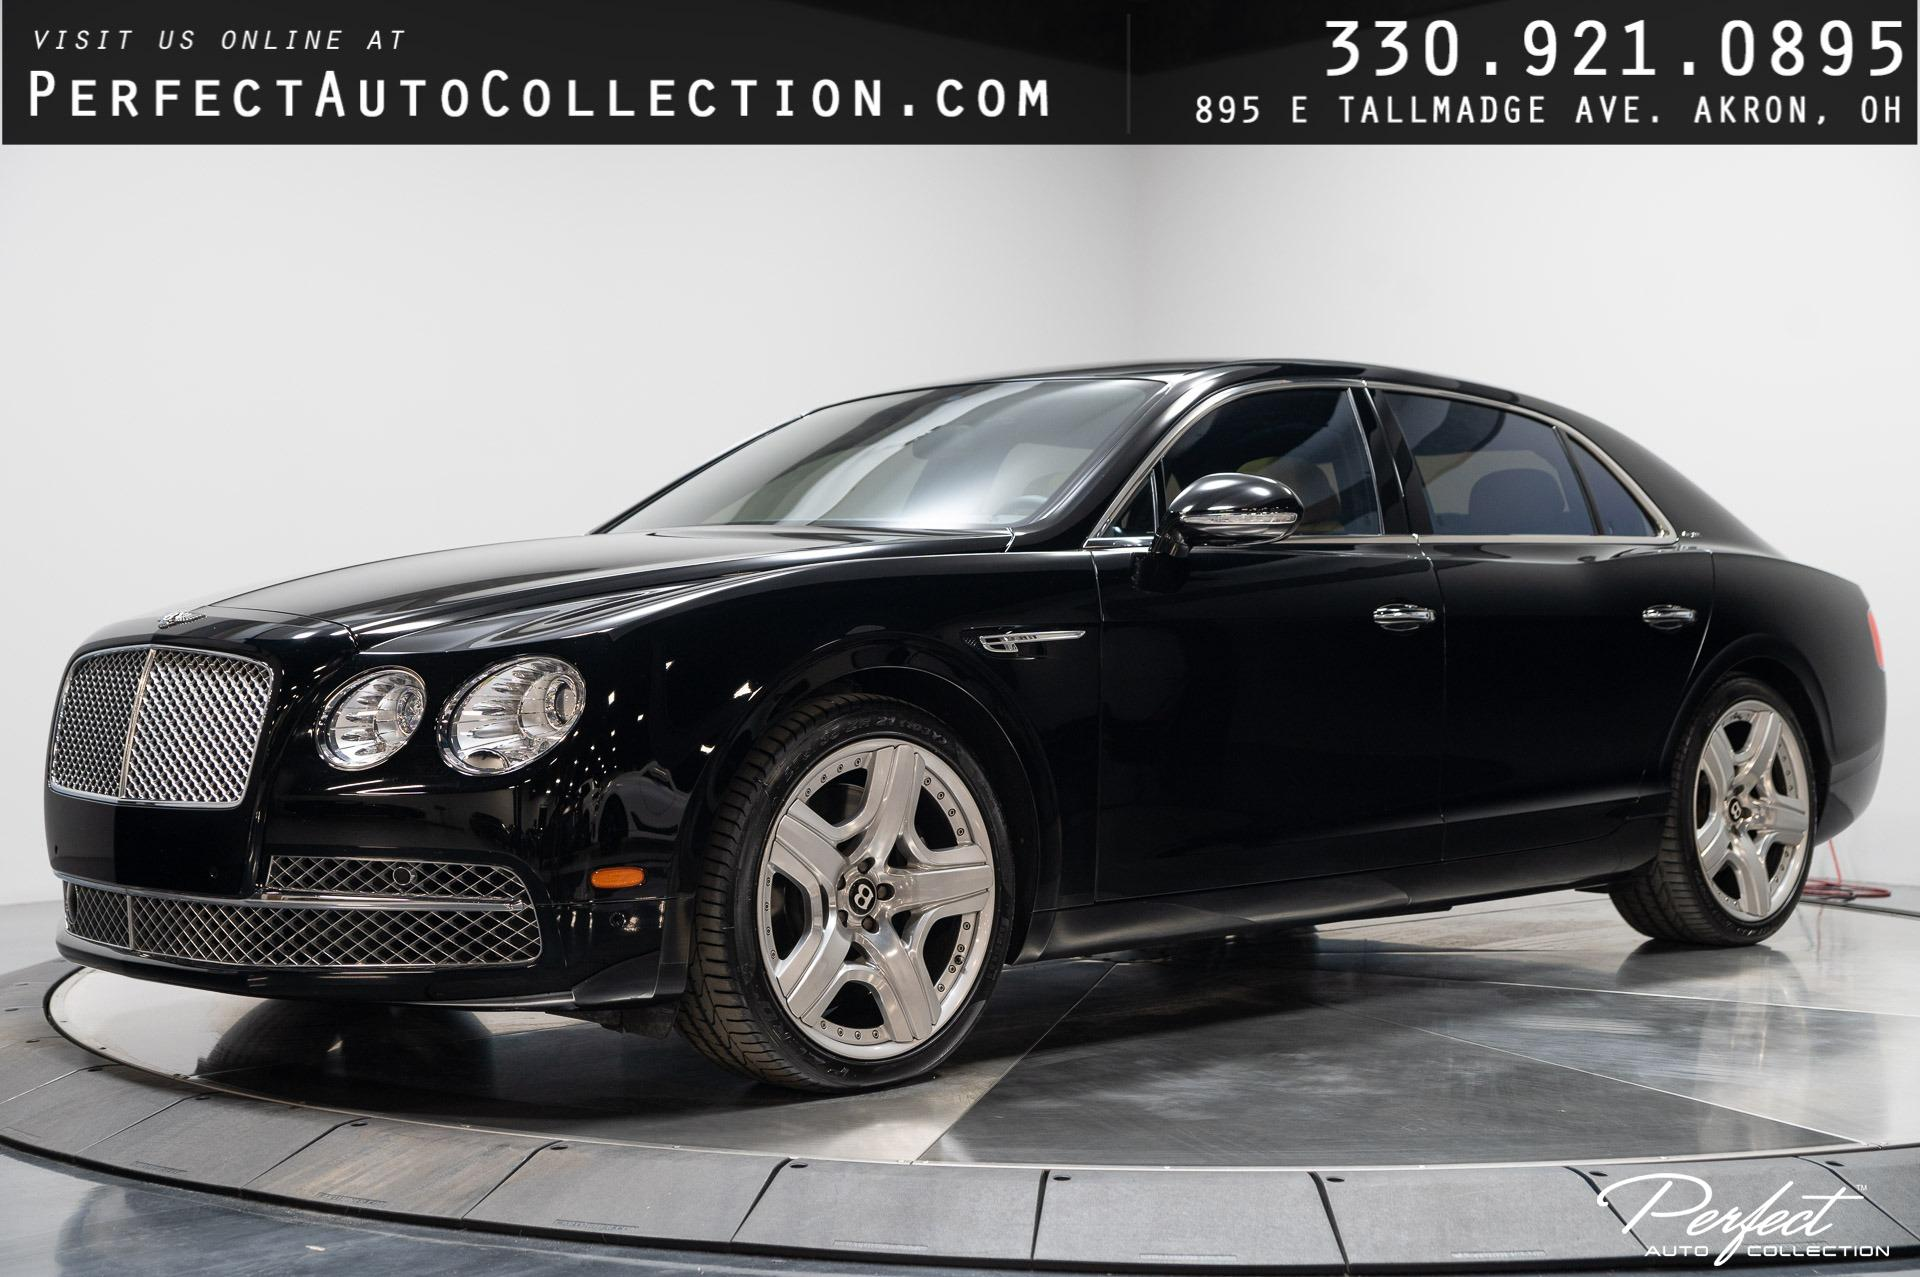 Used 2014 Bentley Flying Spur for sale $79,395 at Perfect Auto Collection in Akron OH 44310 1